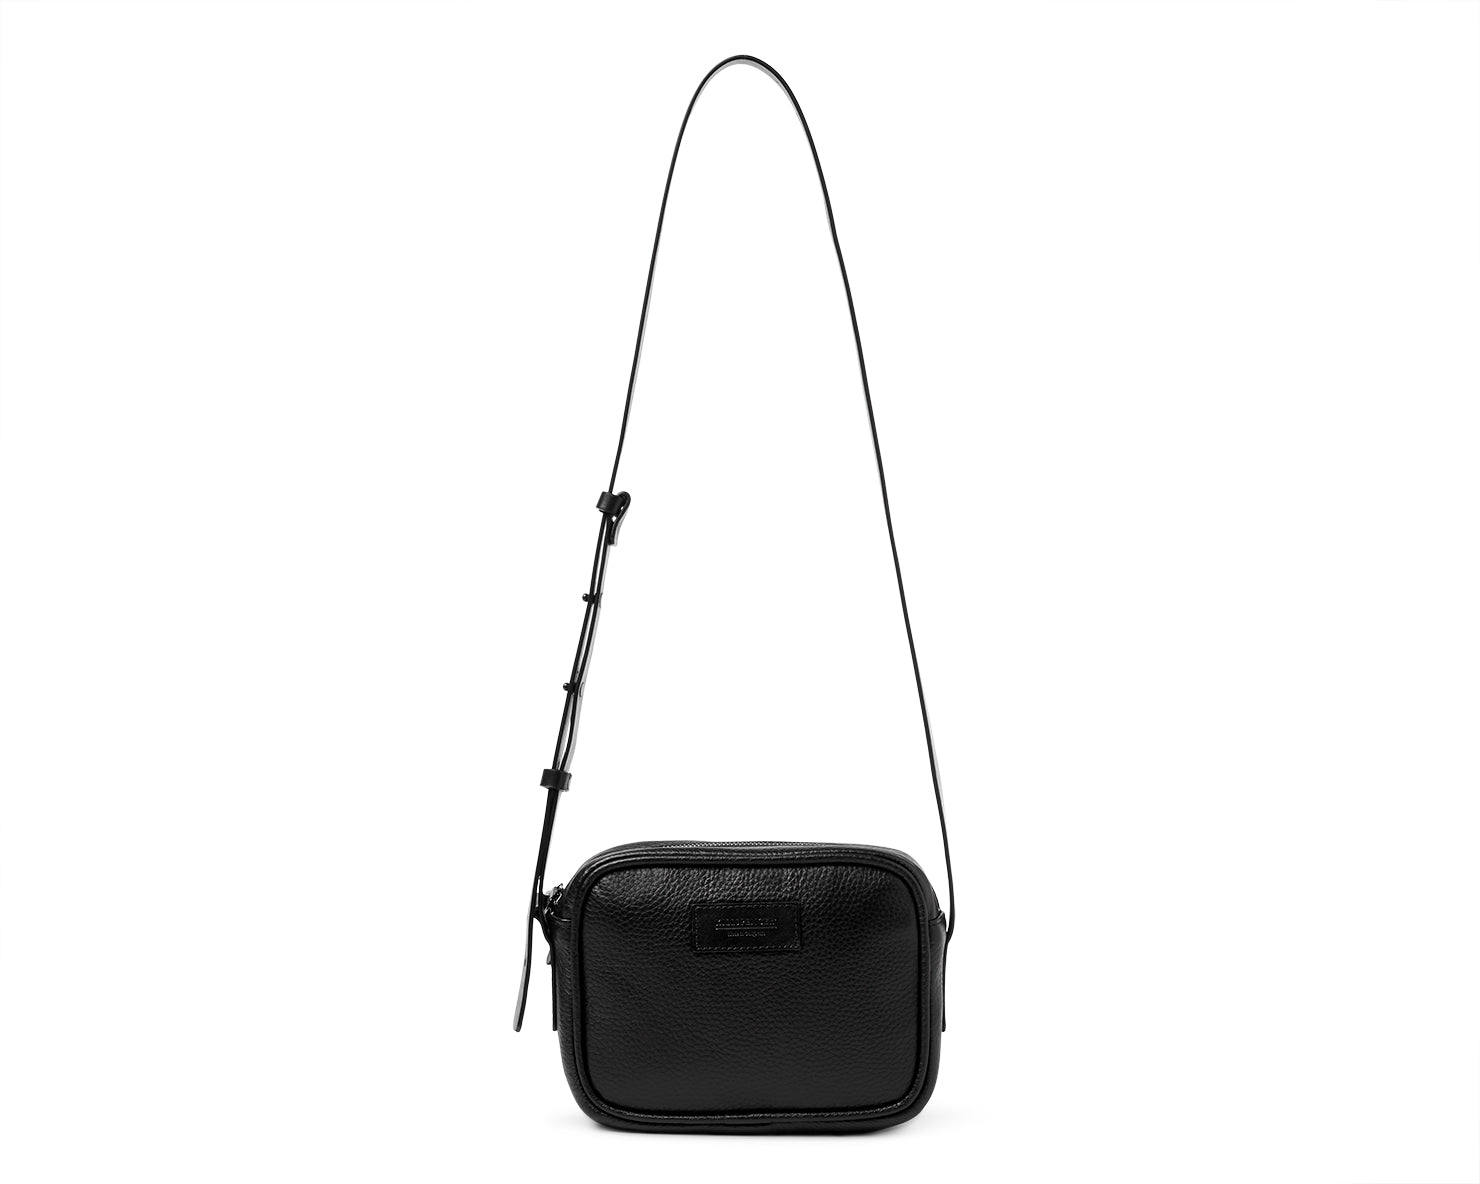 V-1 BAG | KILLSPENCER® - Black Leather